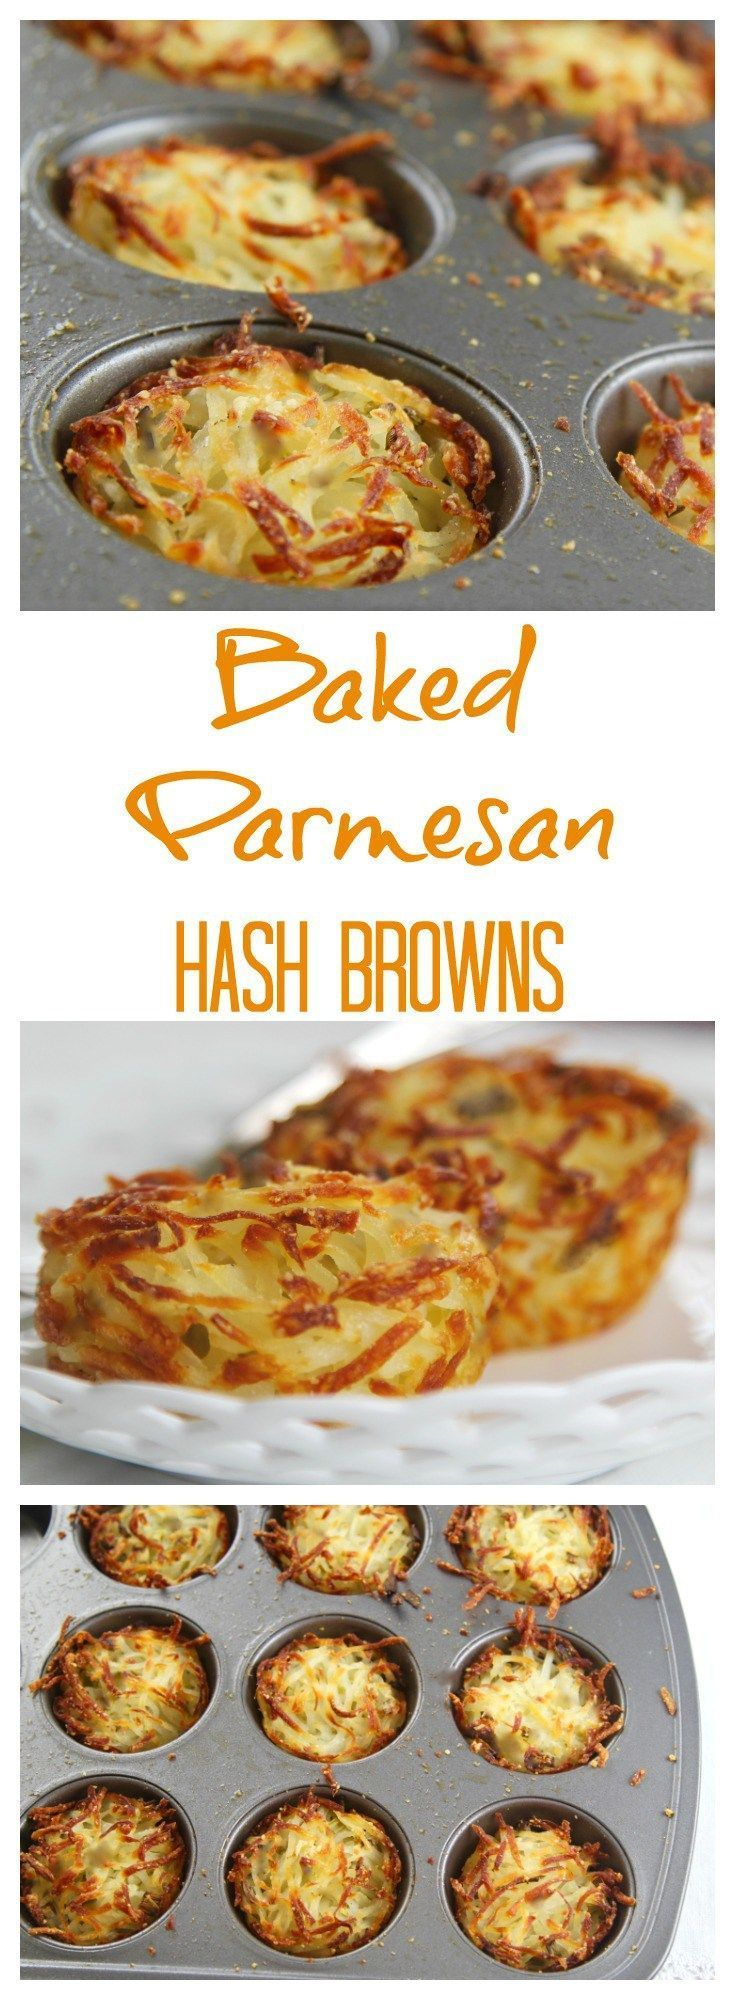 Easy parmesan hash browns baked in muffin cups for crispy edges and soft centers. Prep the night before and bake in the morning for breakfast or brunch. (Potato Recipes Parmesan)